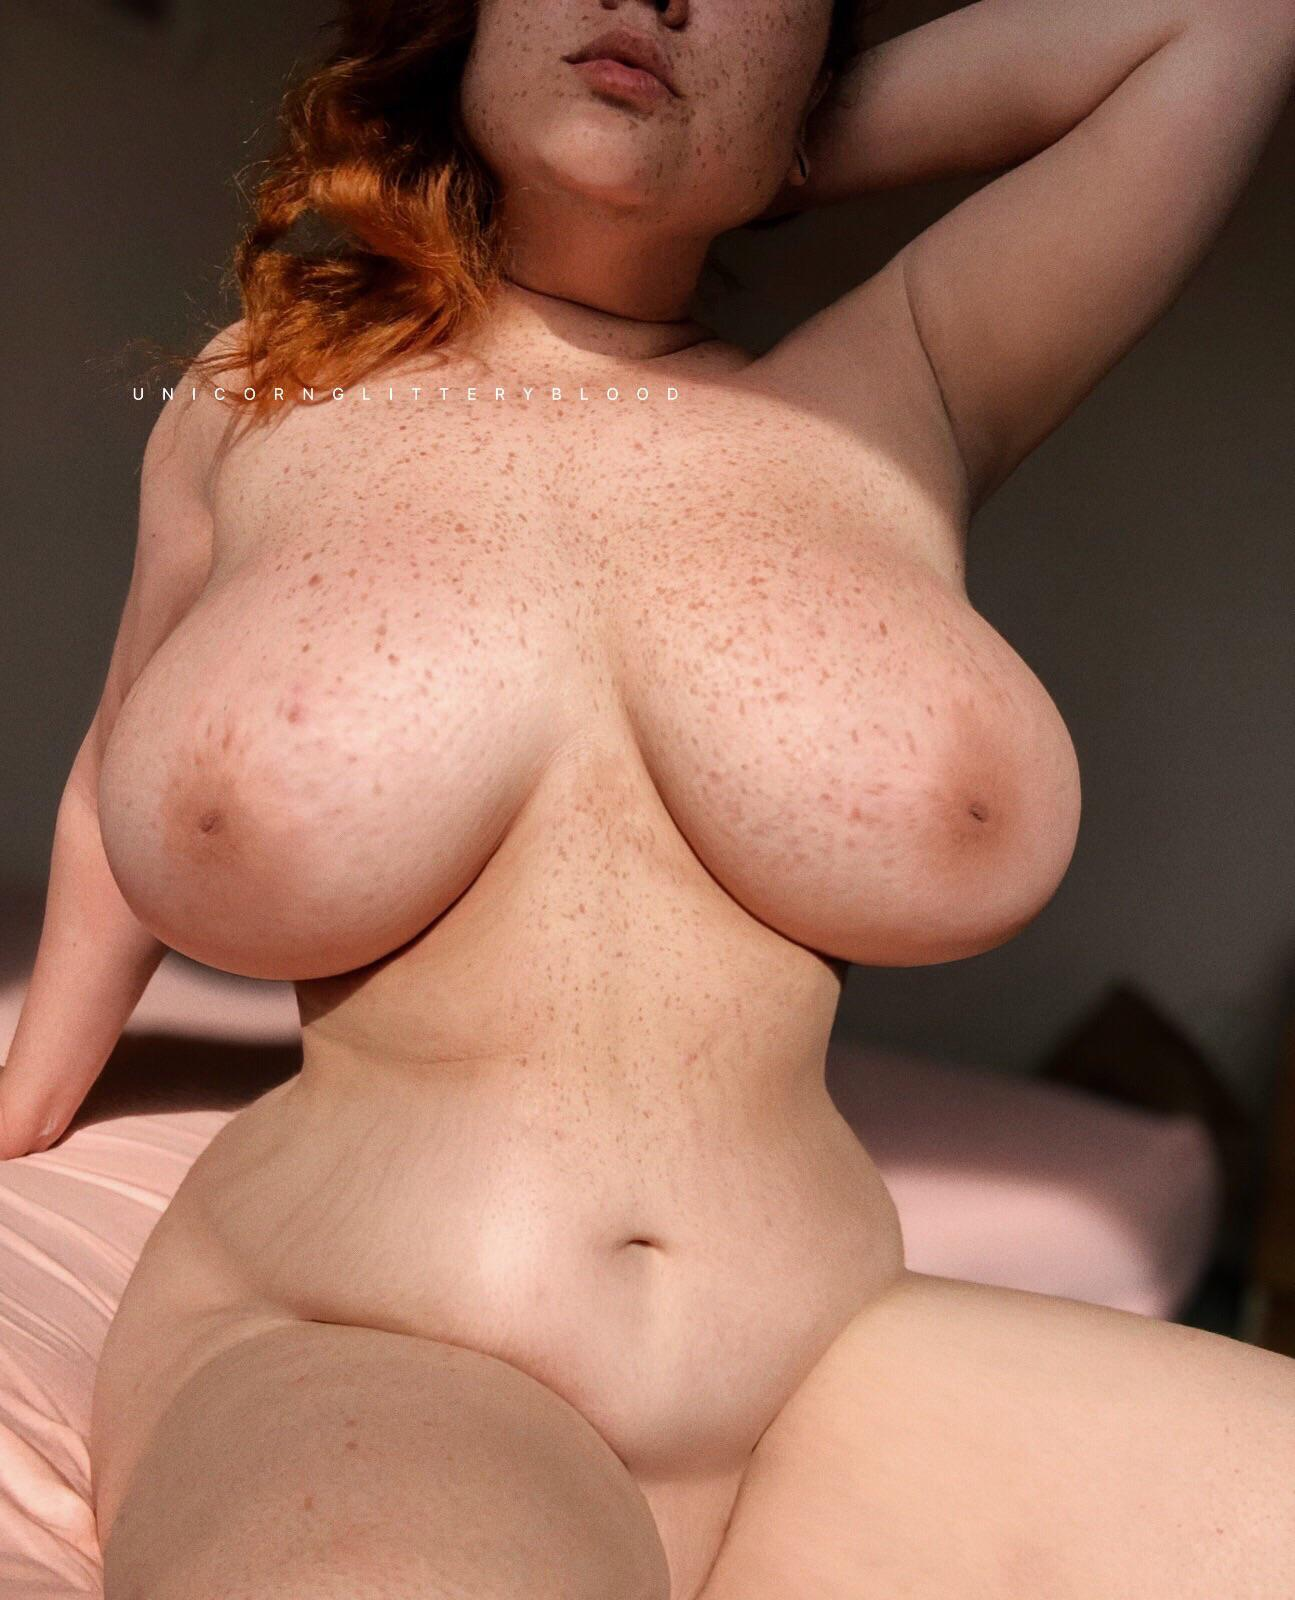 [OC] do you like freckles on huge boobs?